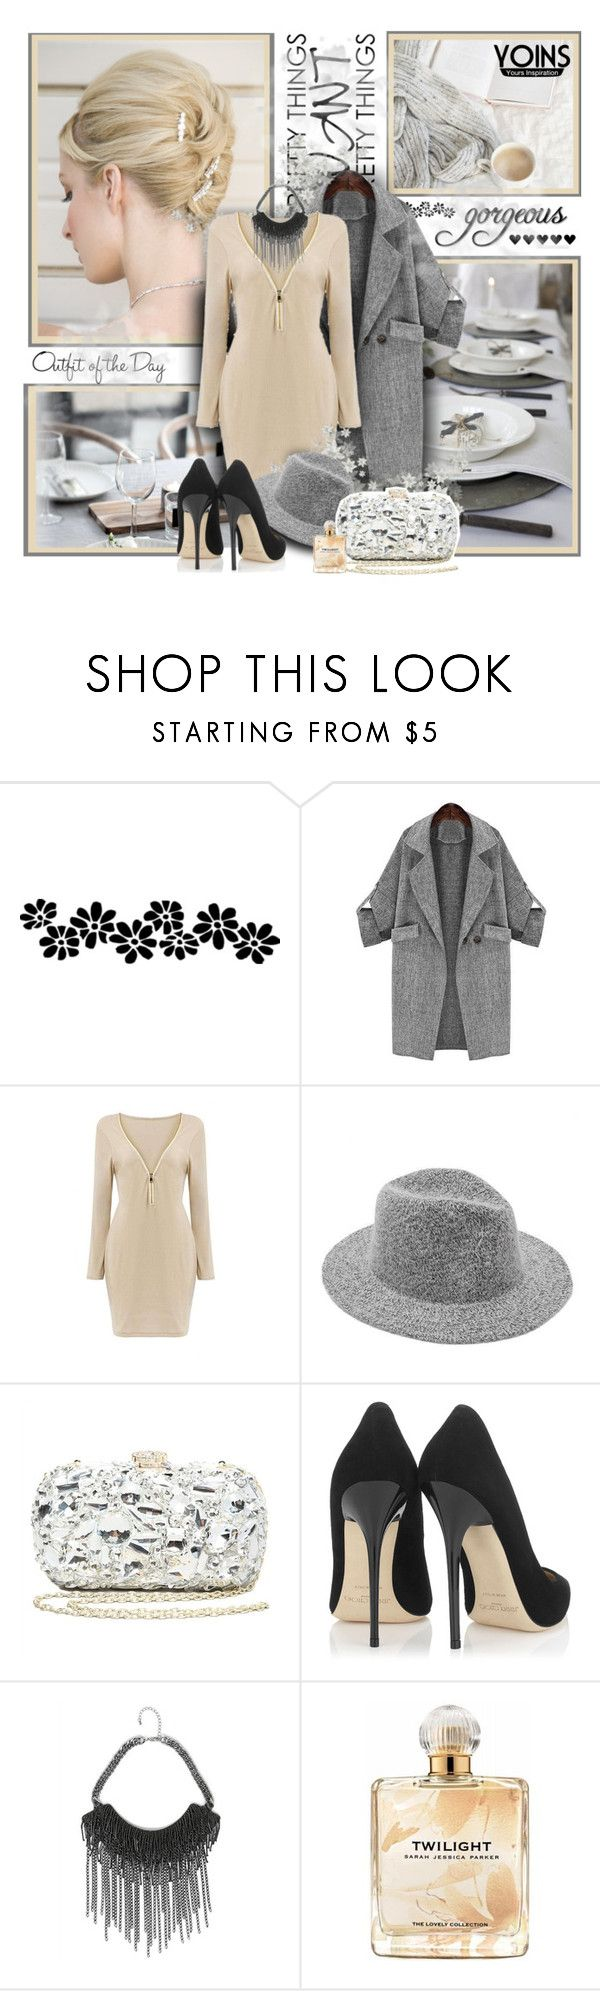 """Yoins"" by sneky ❤ liked on Polyvore featuring Bebe, Jimmy Choo, Petit Bateau and Sarah Jessica Parker"